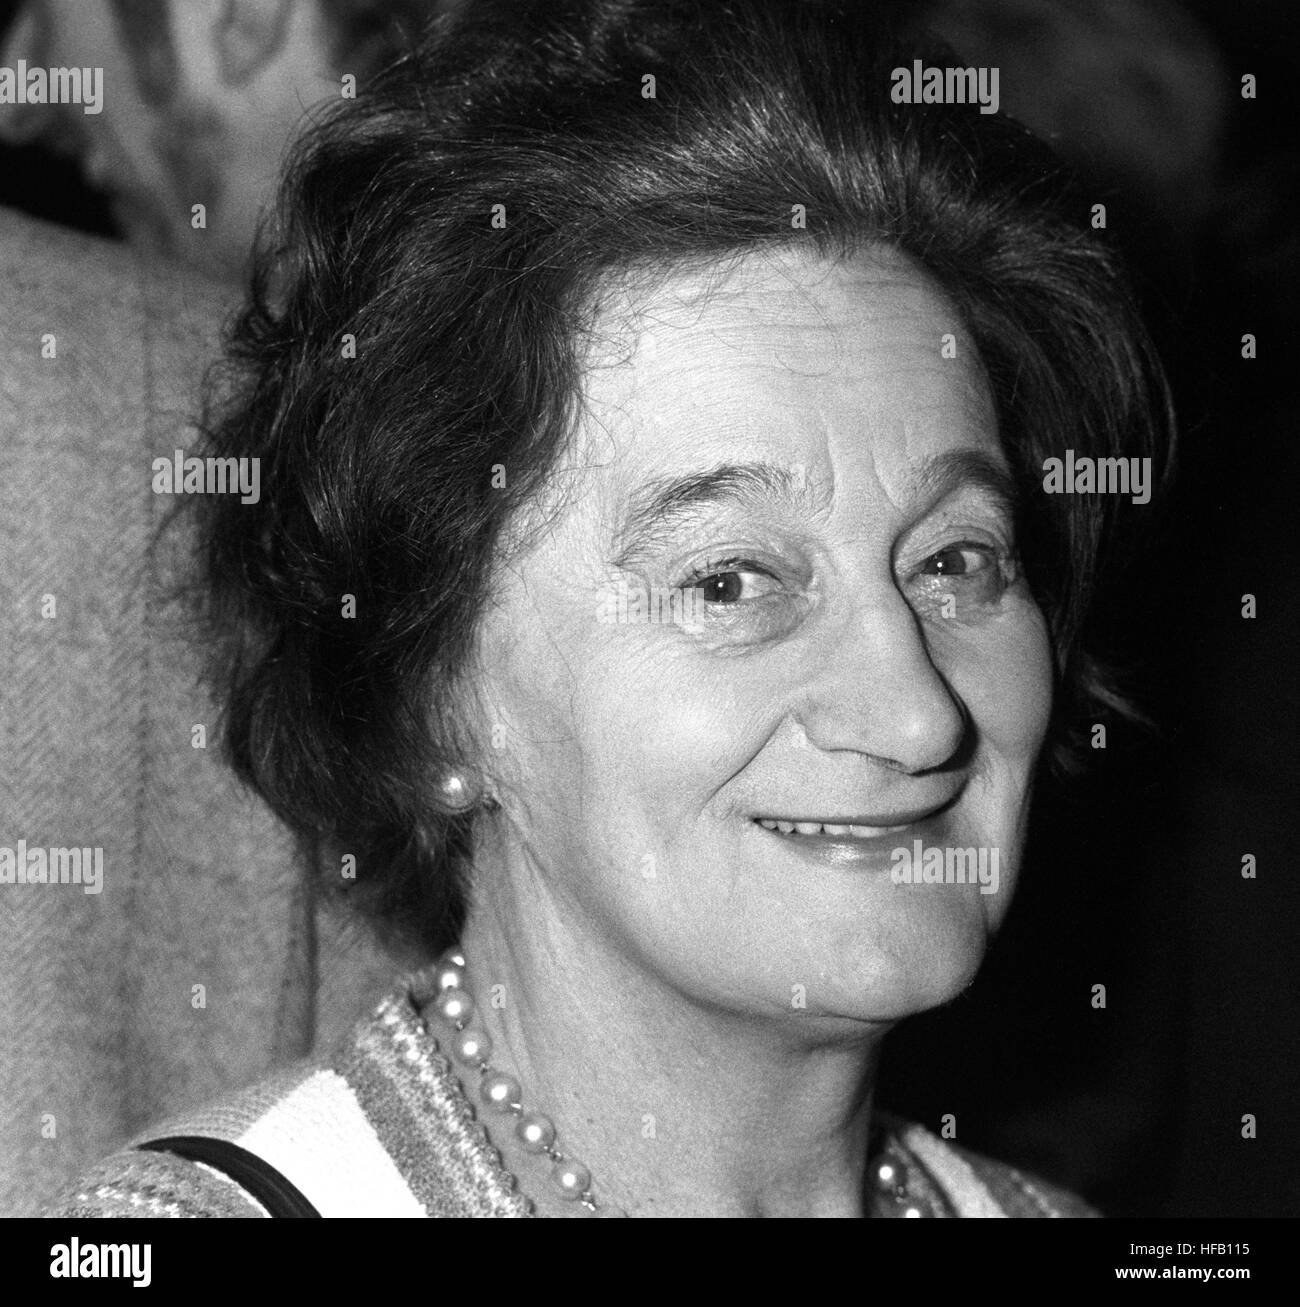 Liz Smith (actress)